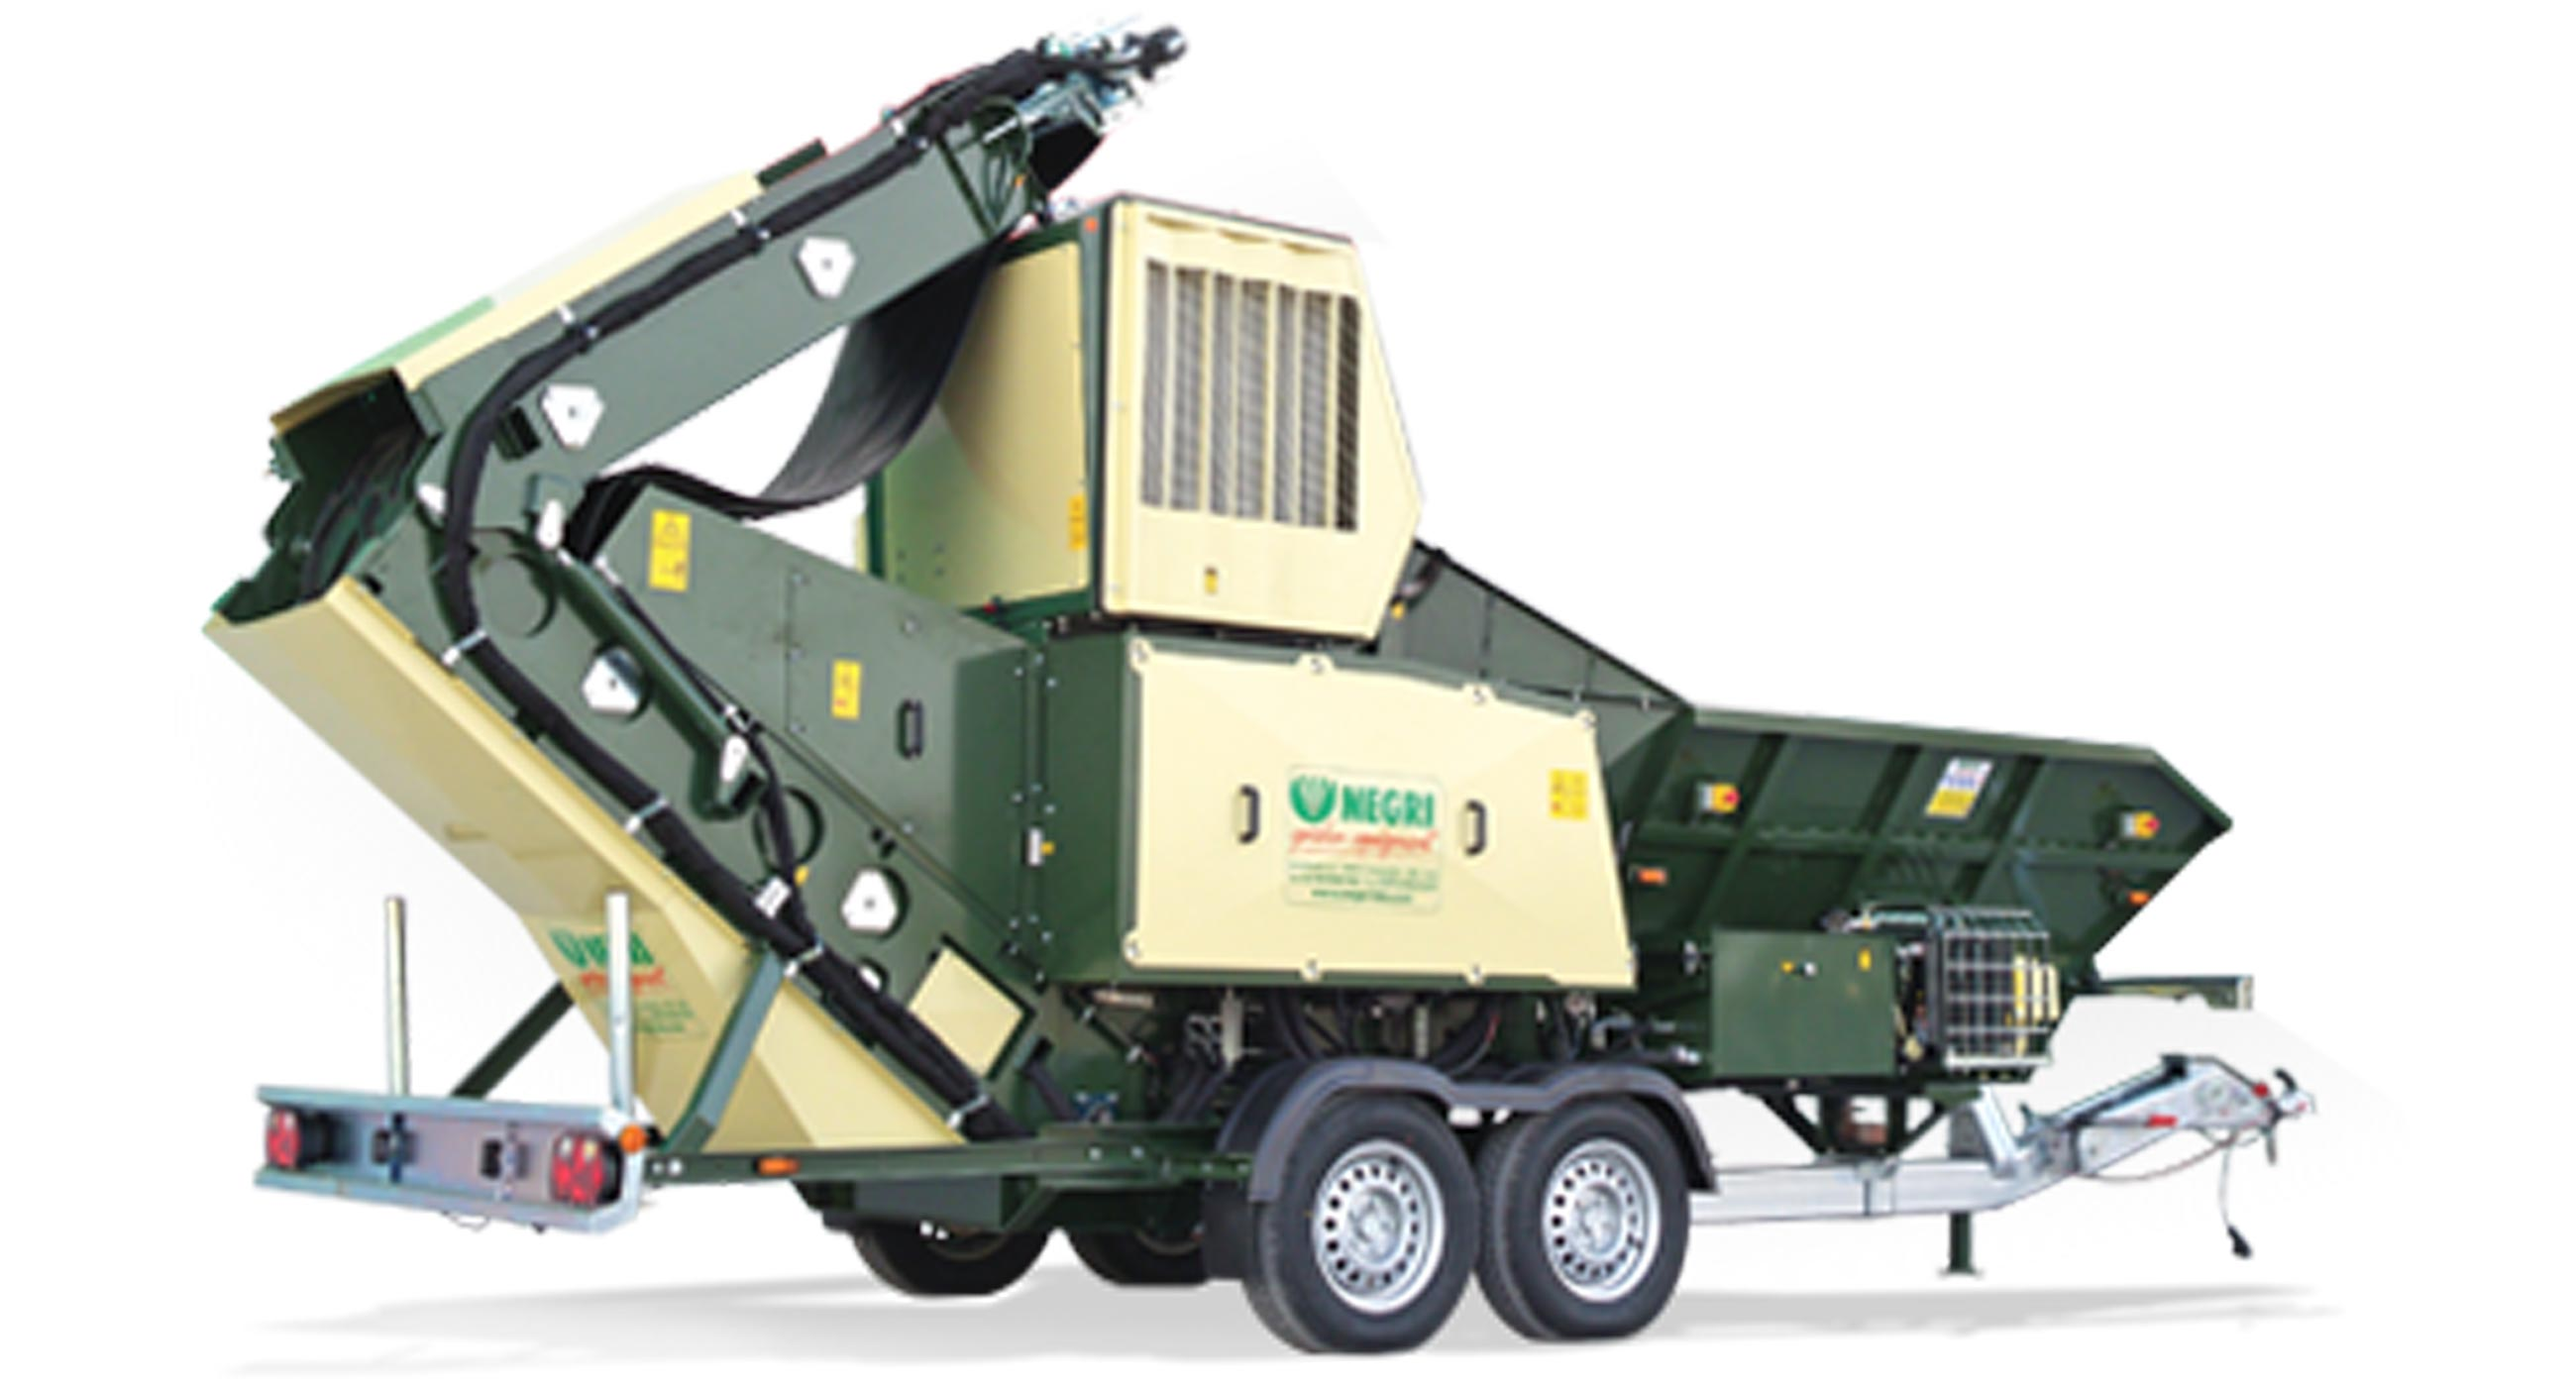 Negri R640 Bioshredder Chipper Mulcher